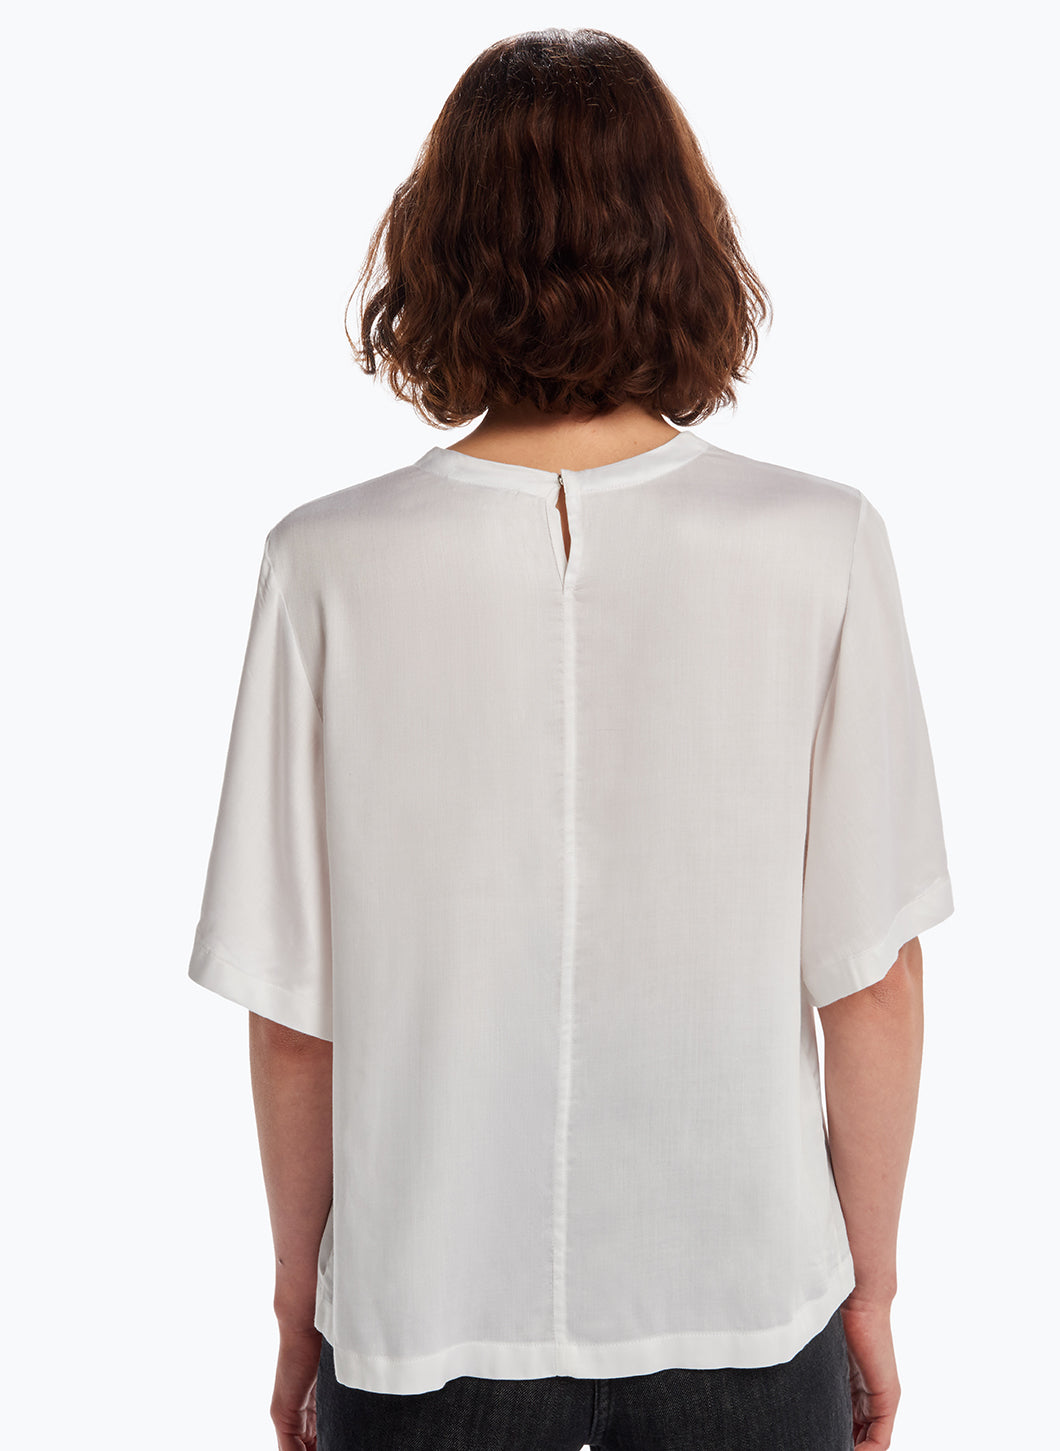 Butterly Sleeve Top in White Viscose Satin